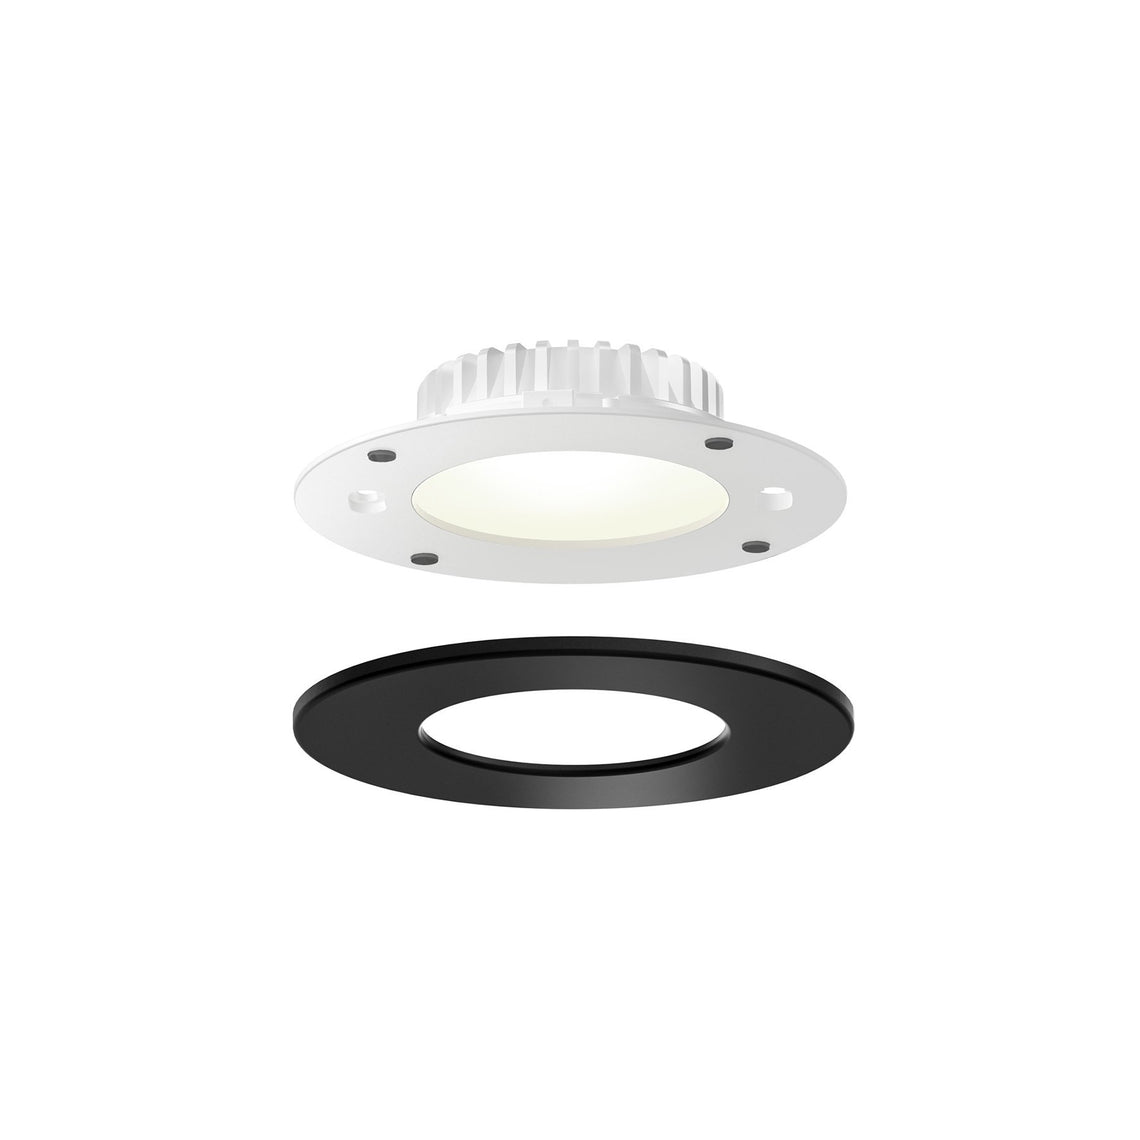 4 Inch Retrofit Panel Light for Octagonal Junction Box and 4 inch Can, 9W, 3000K, Wet Location